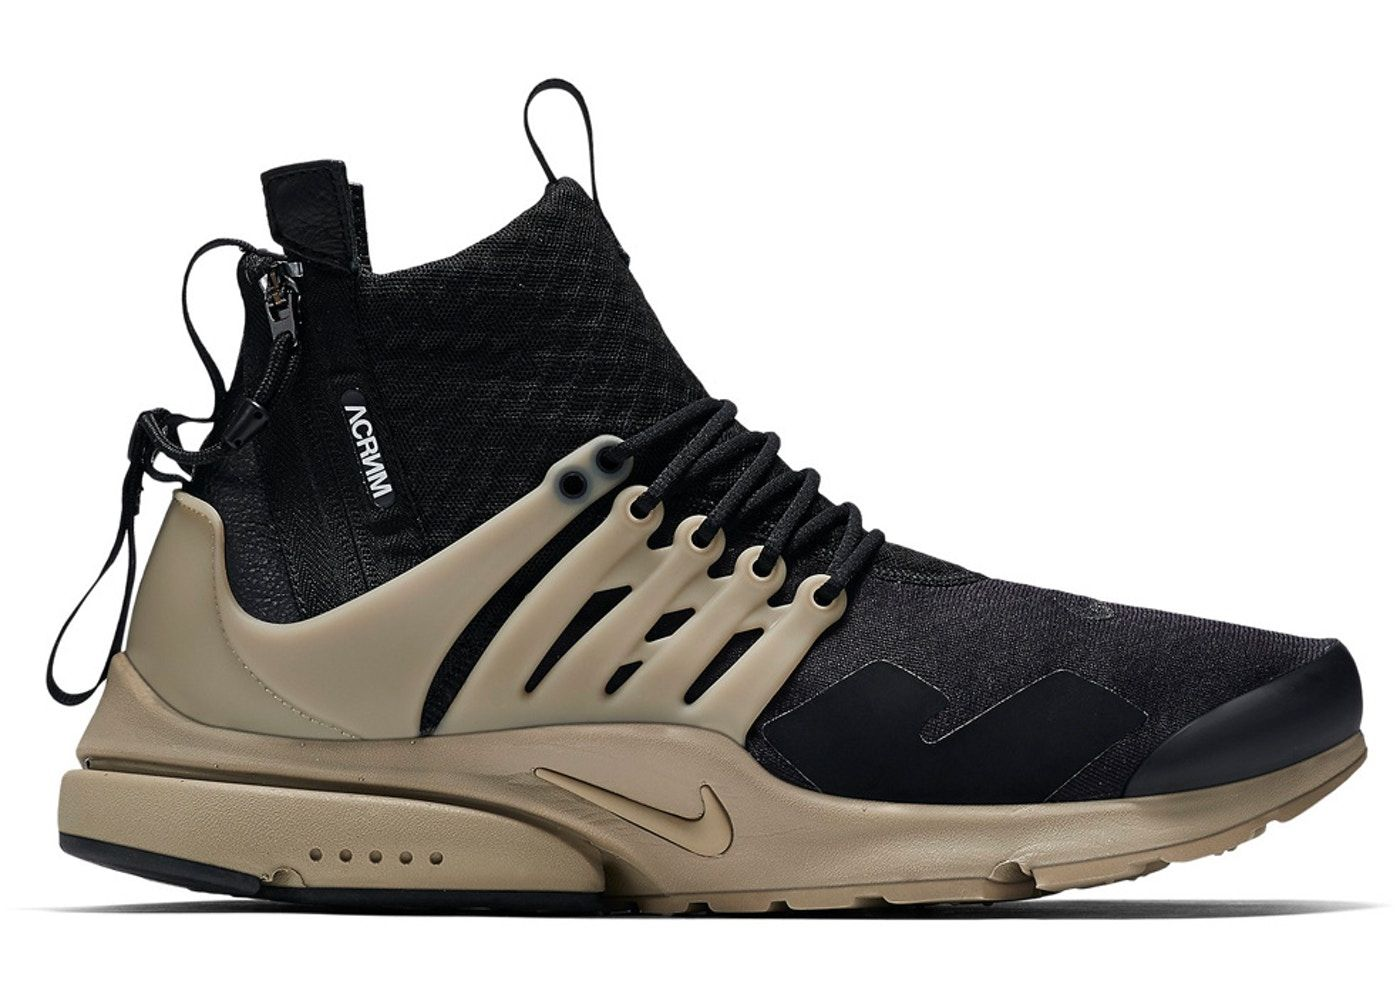 Nike Presto Acronym Bamboo | Shoes in 2019 | Sneakers, Nike ...